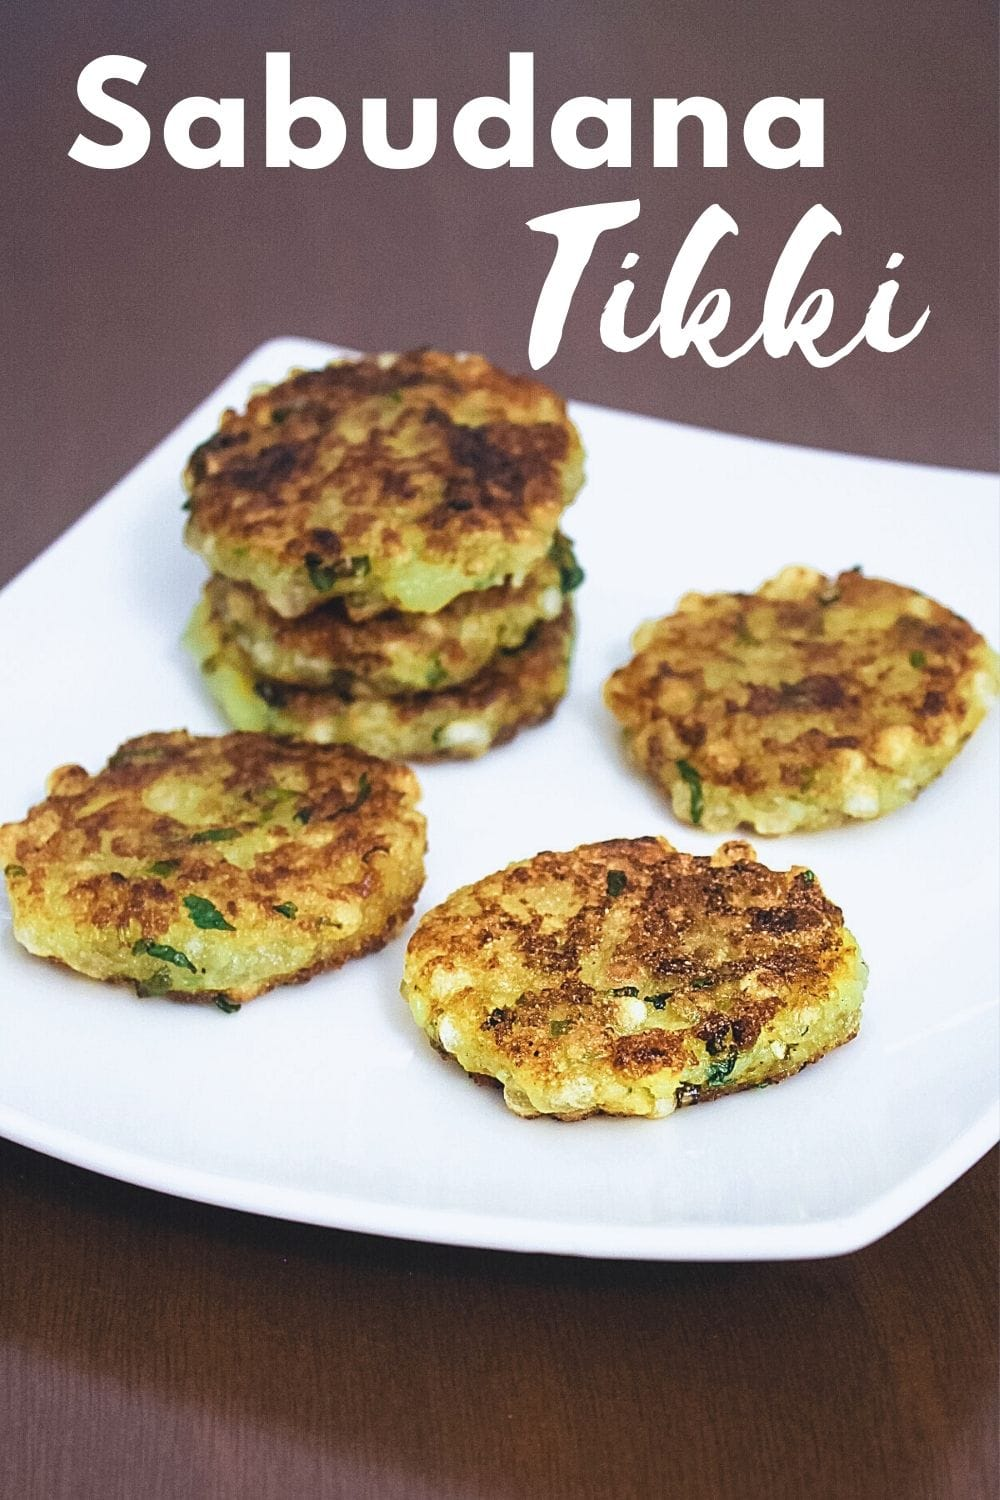 sabudana tikki in a plate with text on top of the image for pinterest